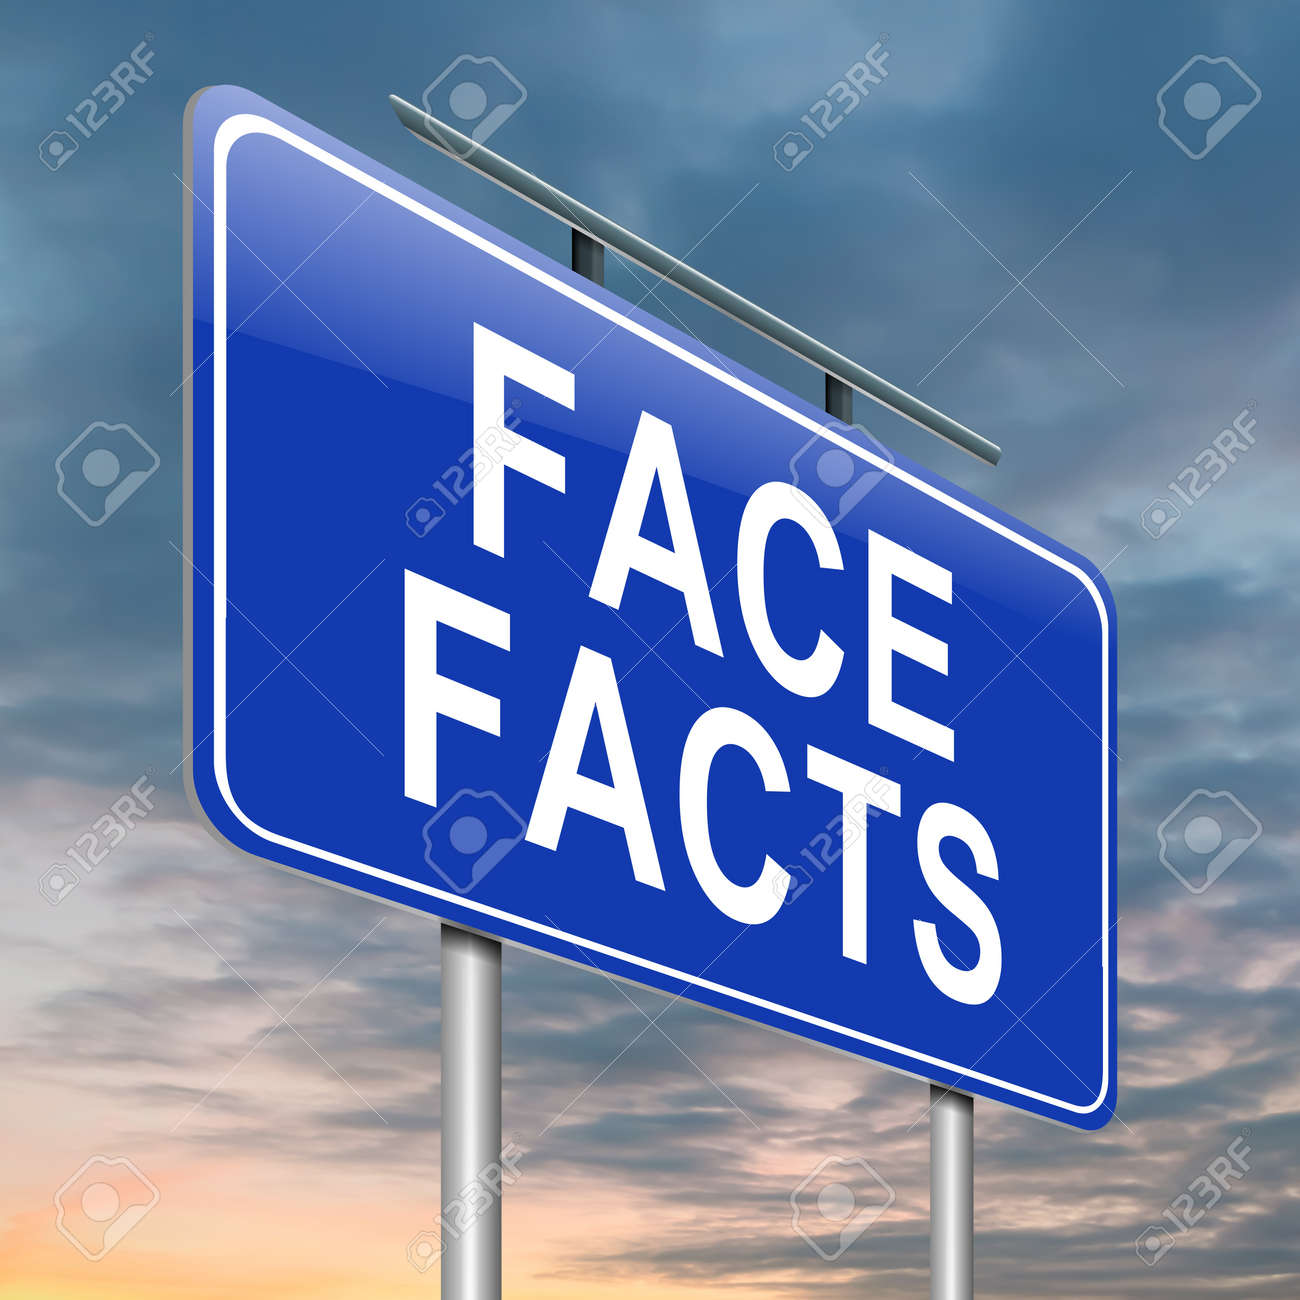 Illustration depicting a roadsign with a face facts concept  Sky background Stock Photo - 15842167